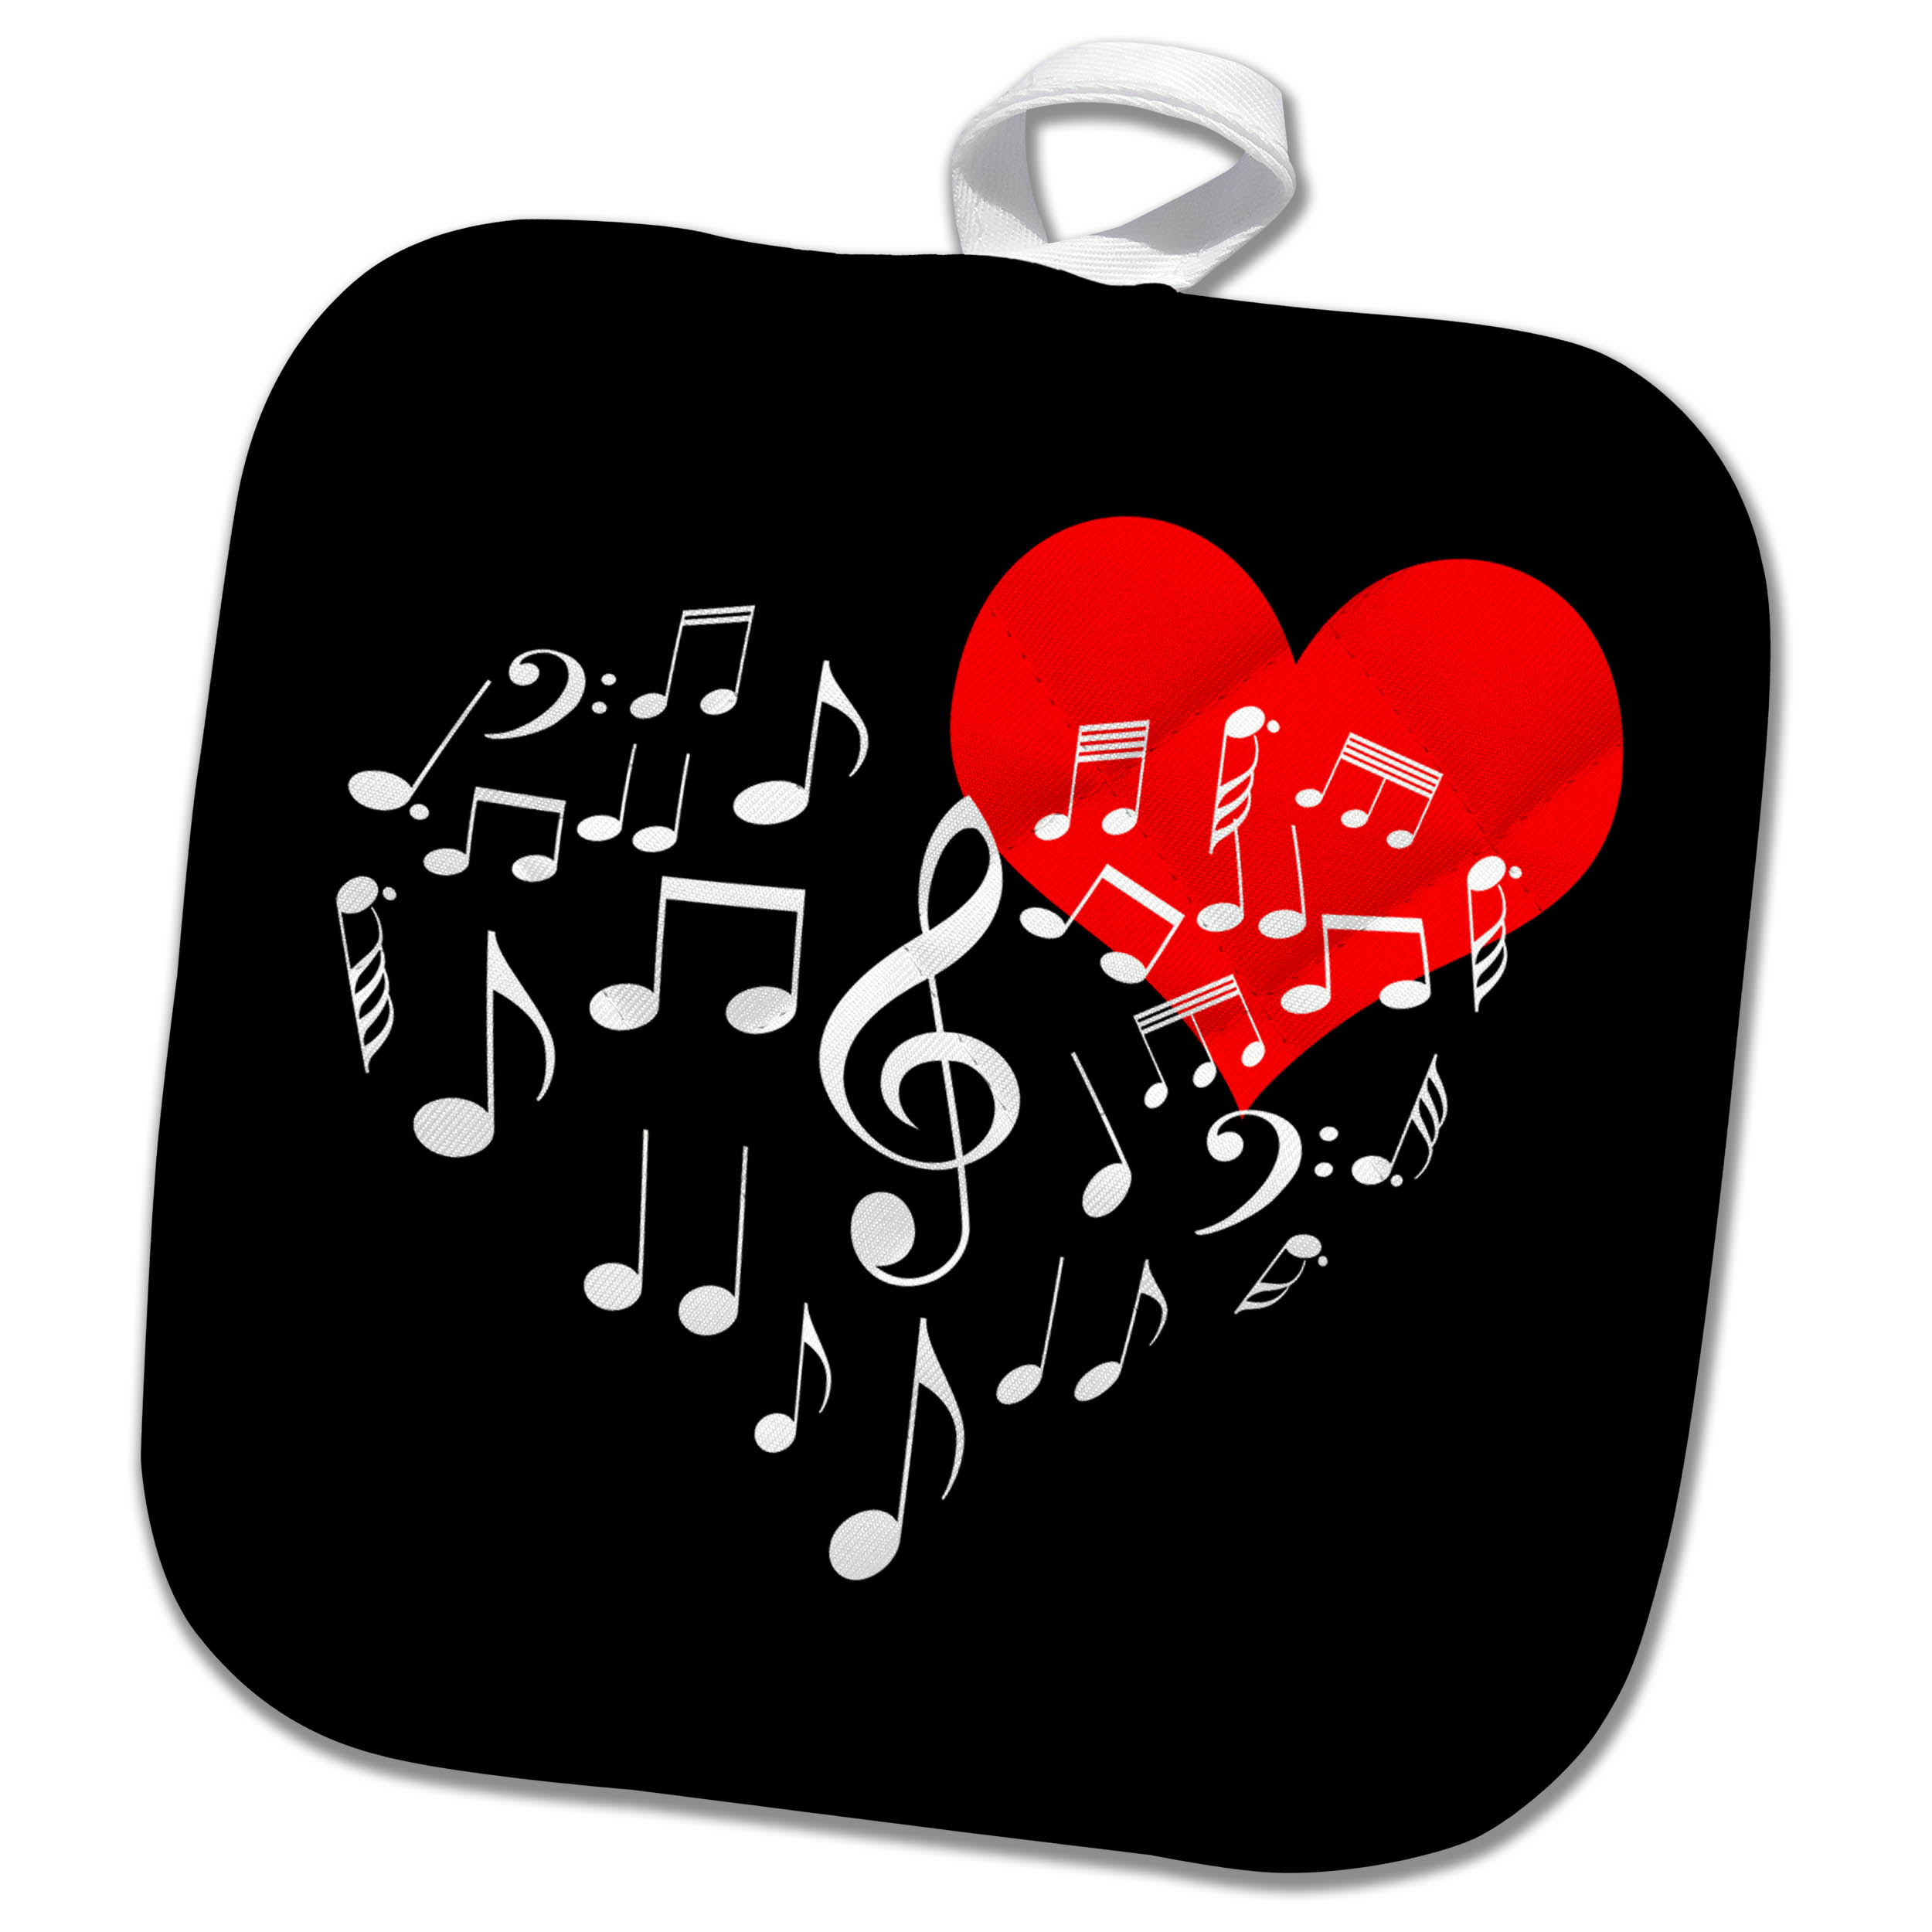 3drose Singing Heart Red Heart And White Music Notes Black Background Pot Holder 8 By 8 Inch Walmart Com Walmart Com